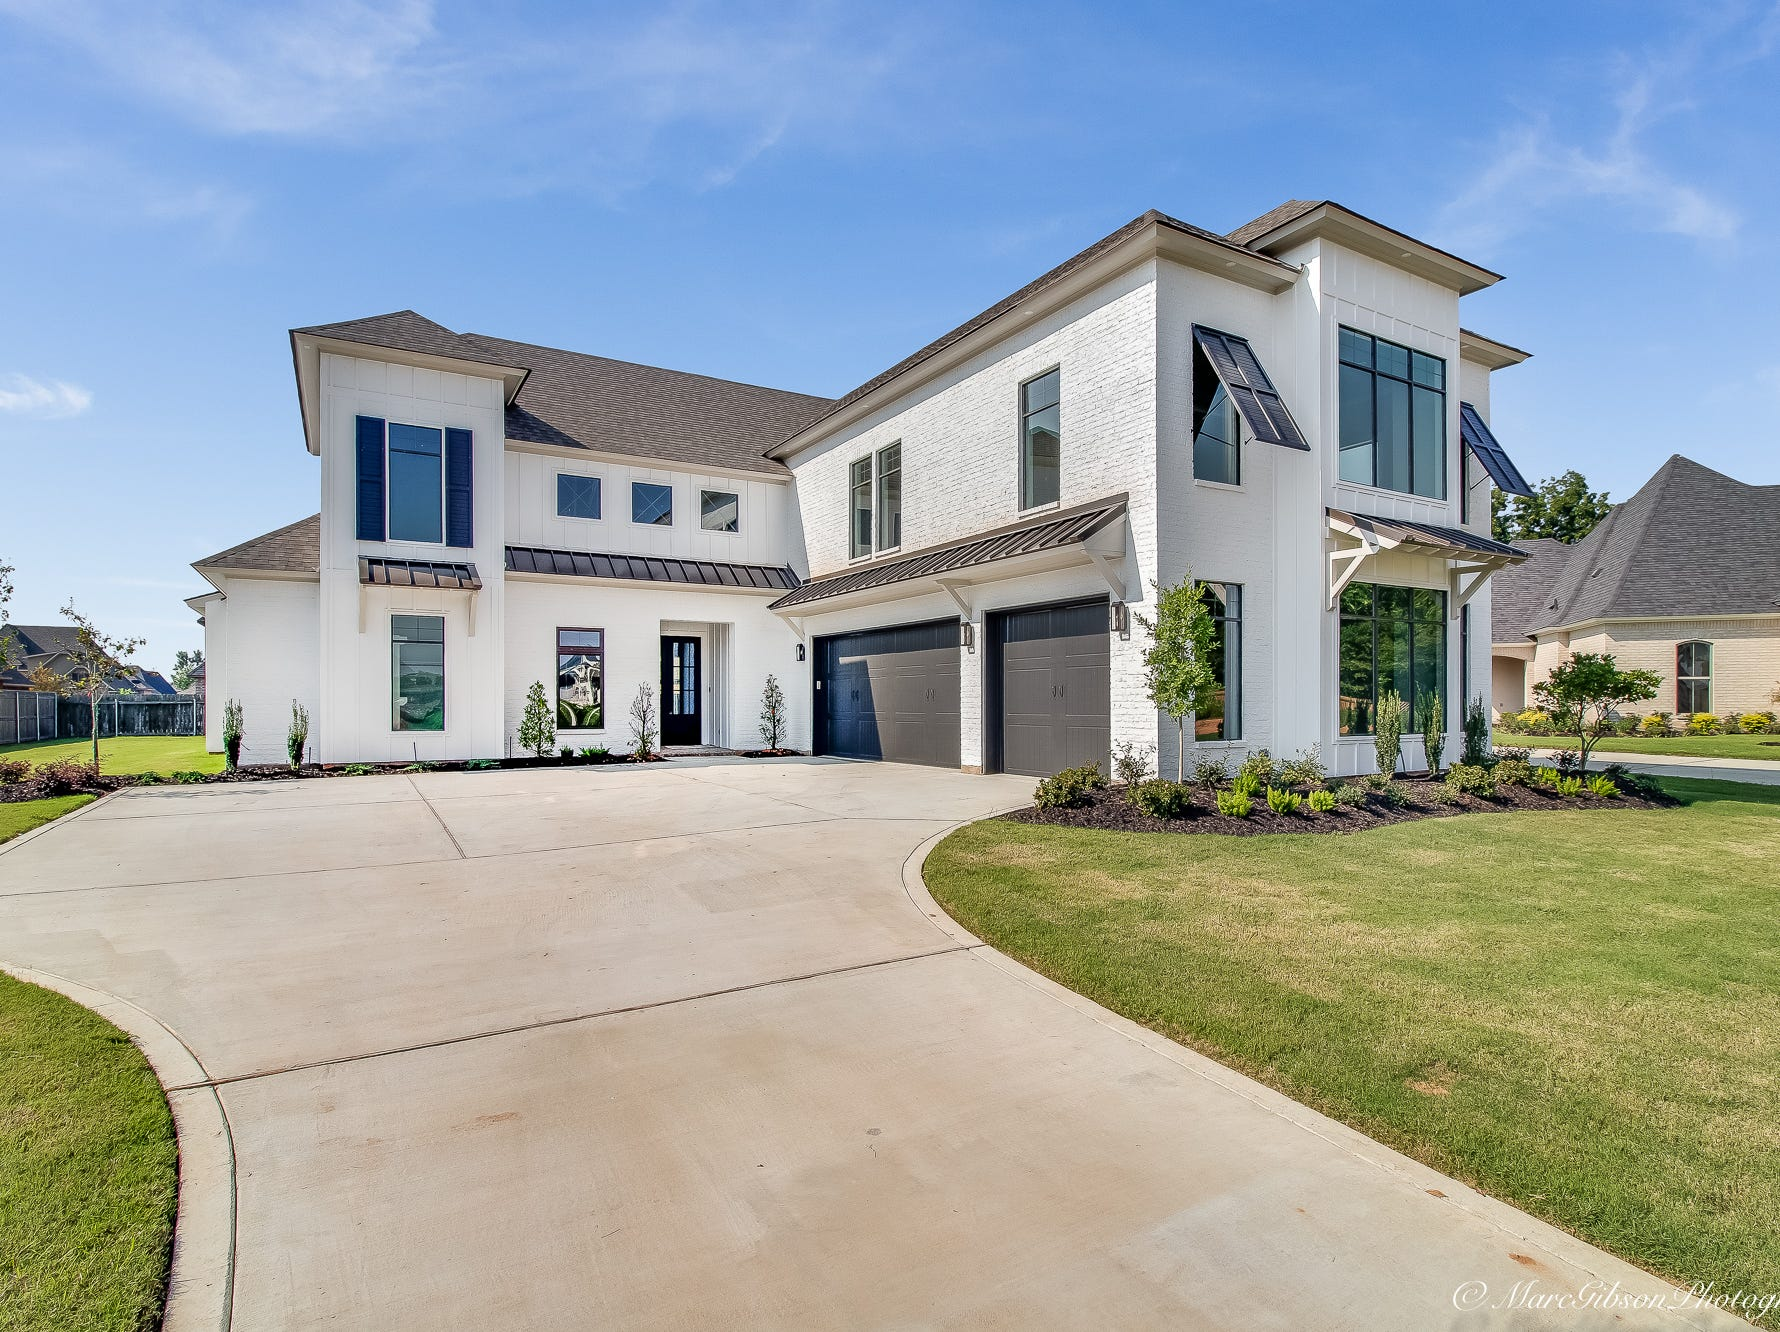 605 Caledonia Drive,   Bossier City  Price: $504,000  Details: 4 bedrooms, 3 bathrooms, 3,150 square feet  Special features: Tiburon Estate's showstopper with open floor plan and urban farmhouse finishes.  Contact: Tammi Montgomery, 540-6108